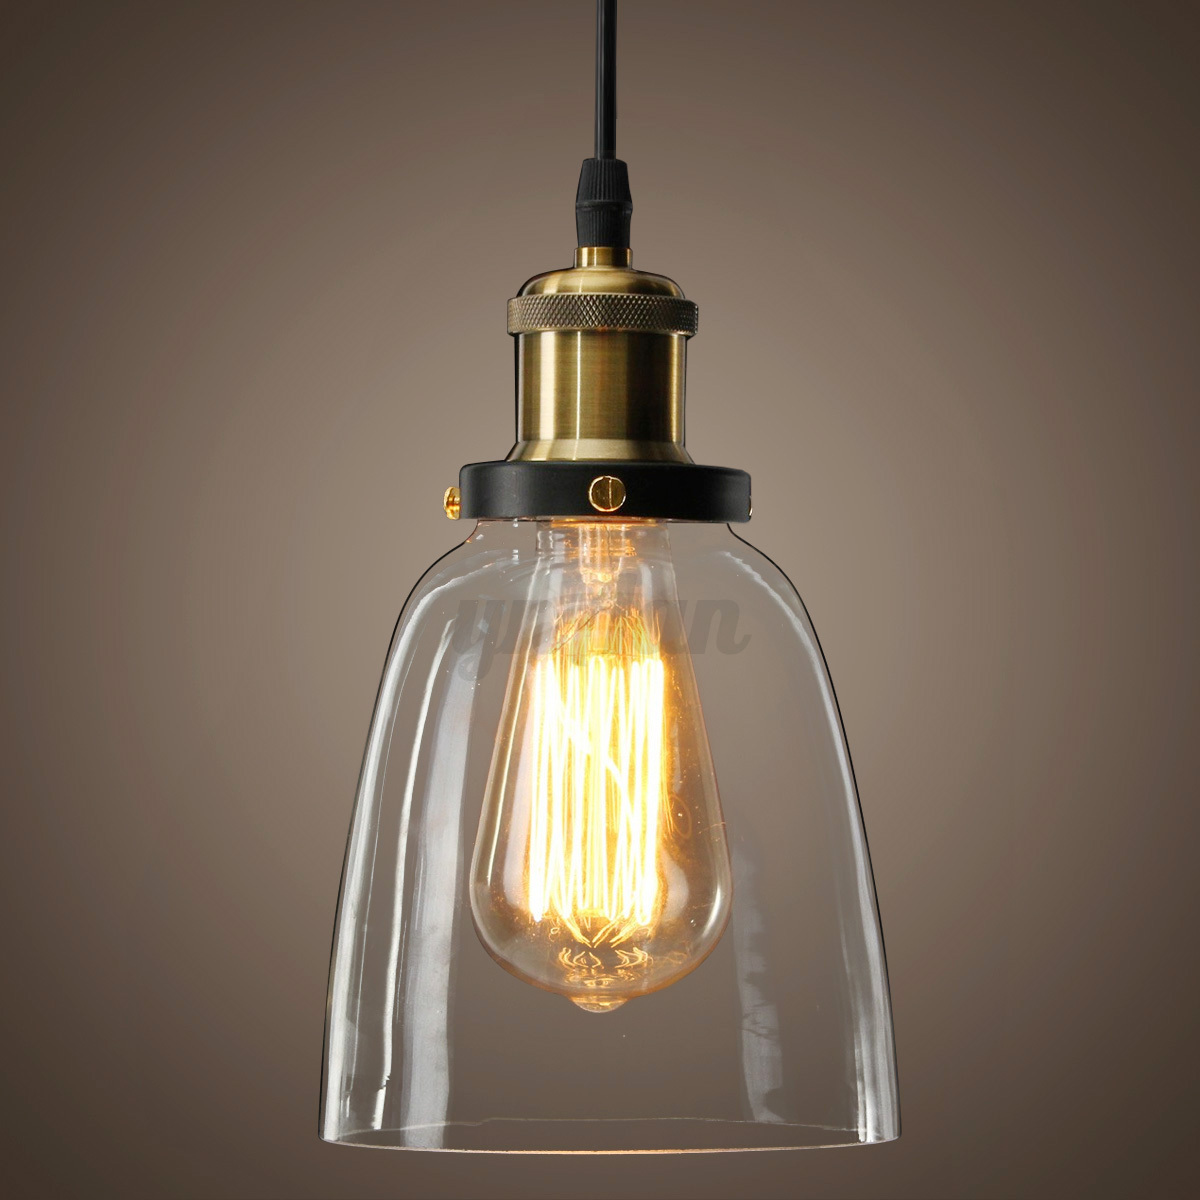 Modern Vintage Lights New Glass Modern Vintage Industrial Retro Loft Ceiling